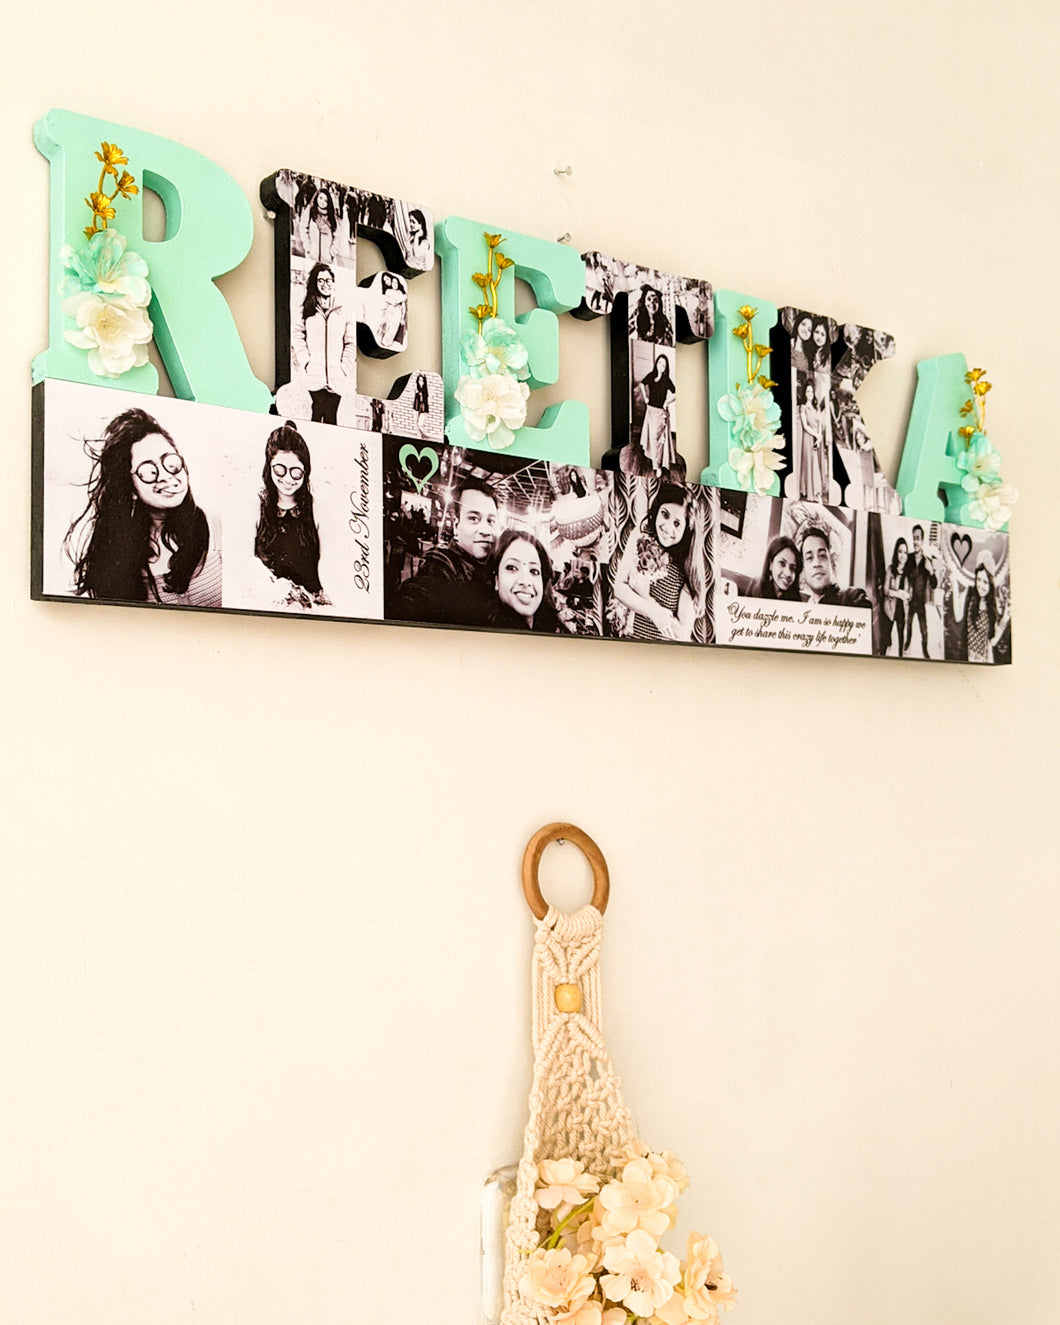 Customized name wall hanging with photos and flowers- perfect gift for your loved ones